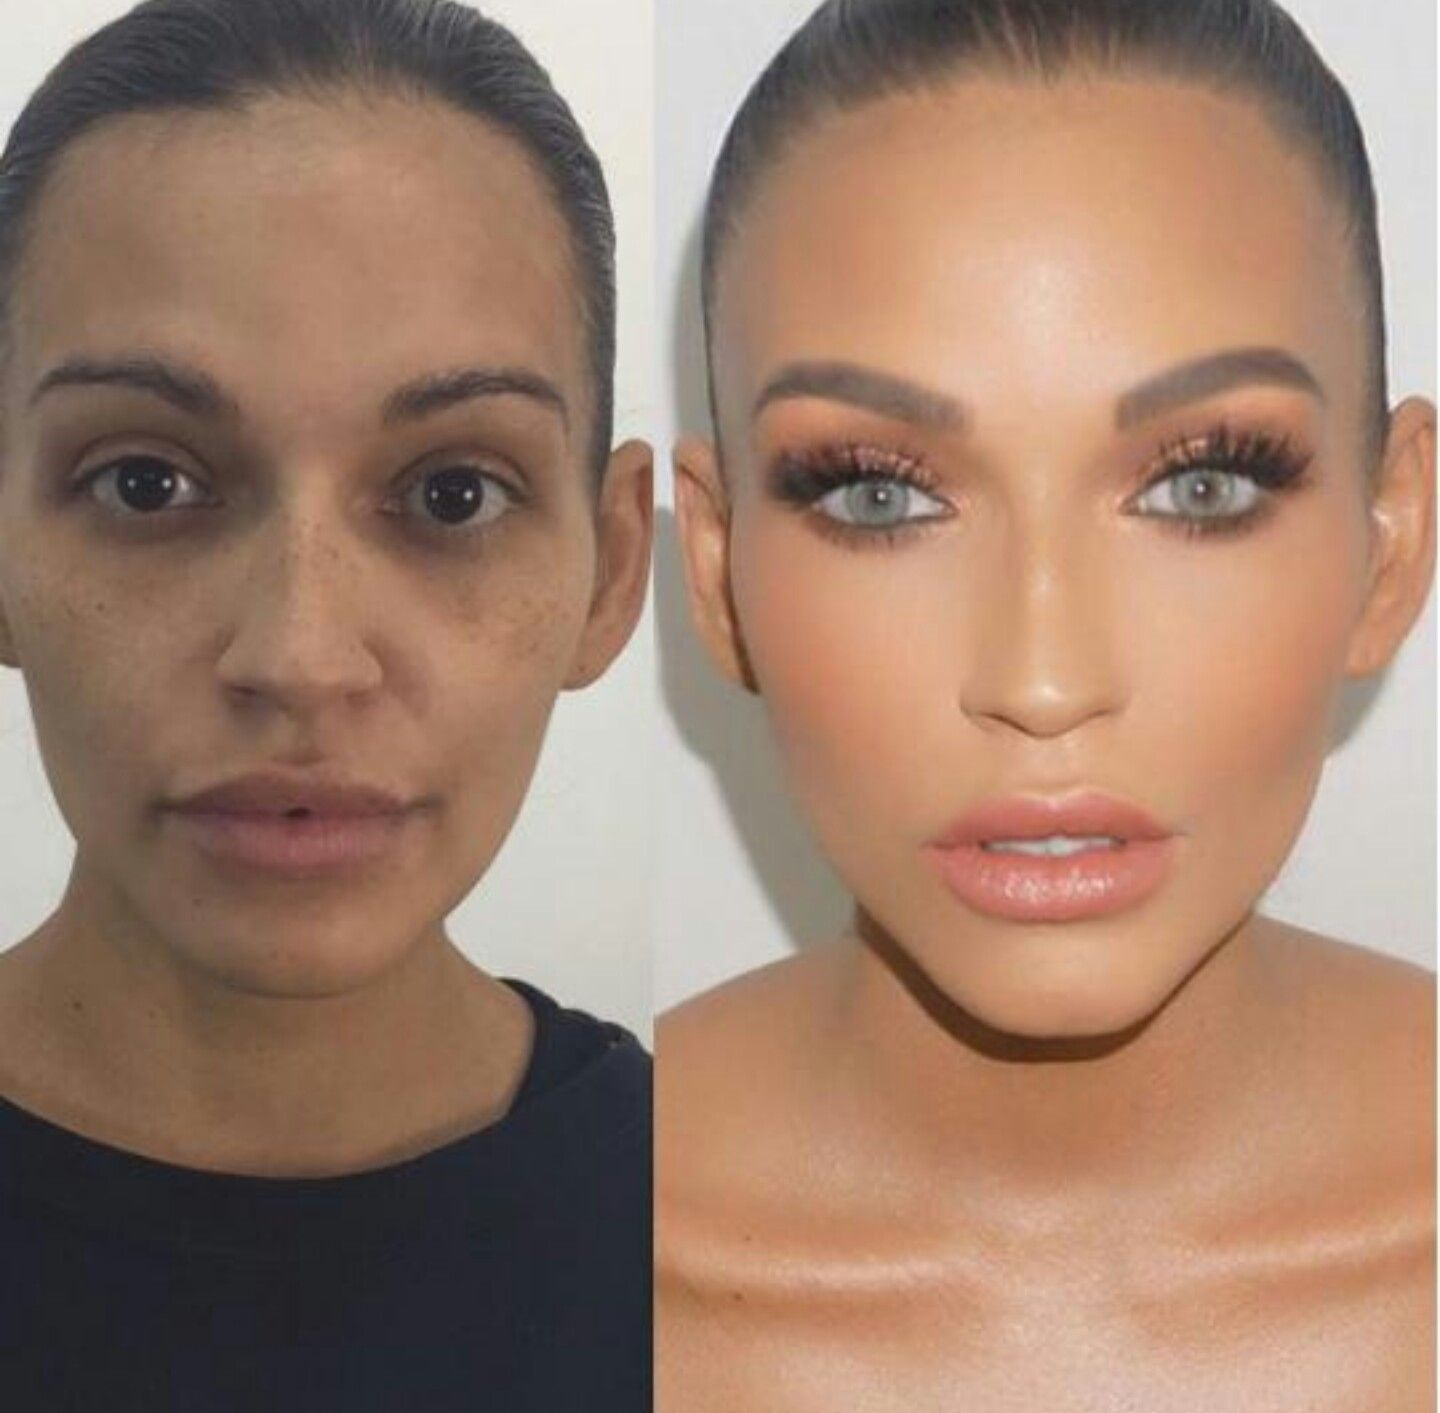 Before After Contour Makeup Makeupforblueeyes